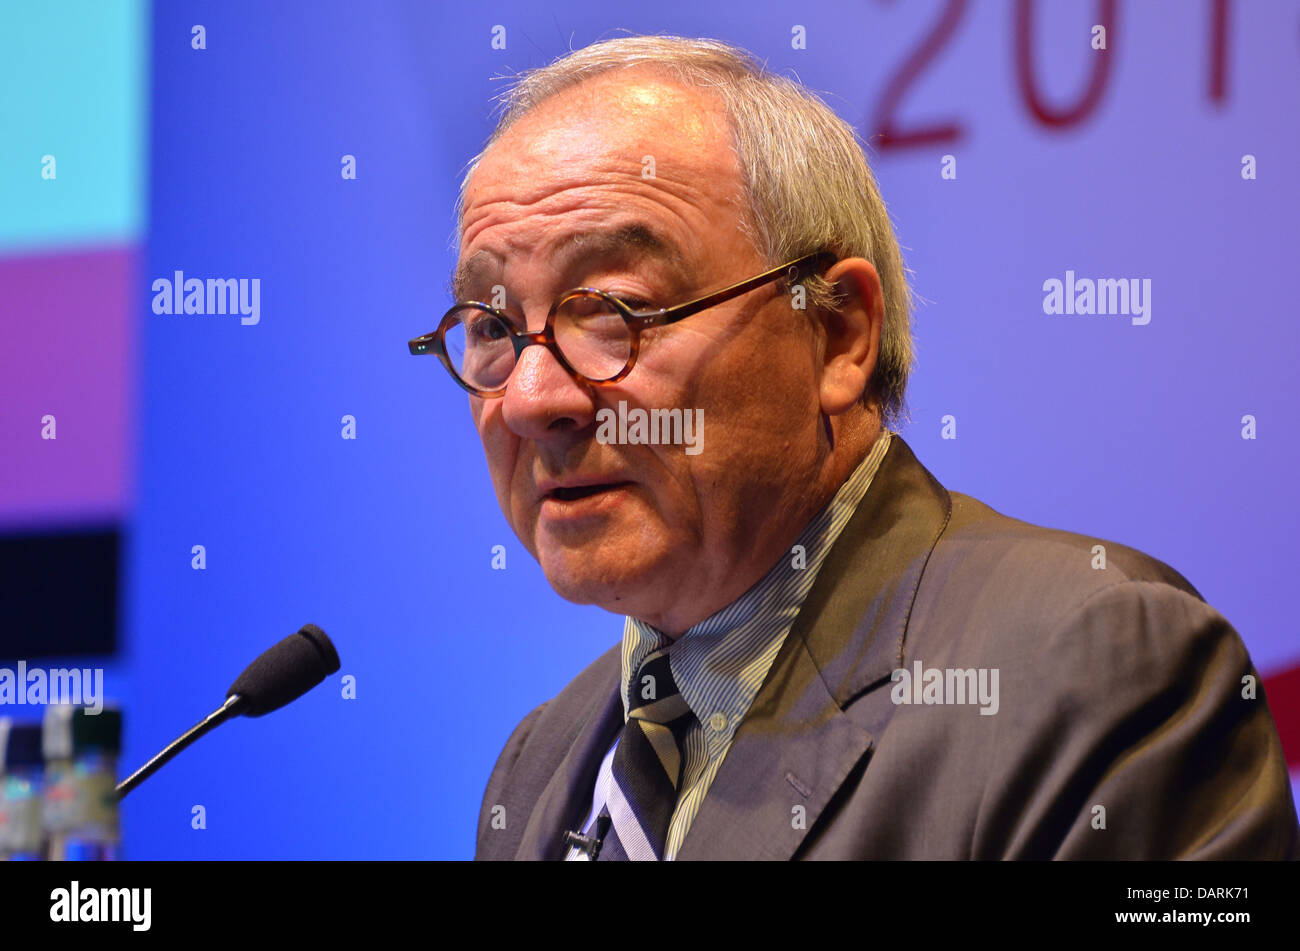 Jean-Jacques Dordain, European Space Agency Director General, speaking at the 2013 UK Space Conference in Glasgow. - Stock Image